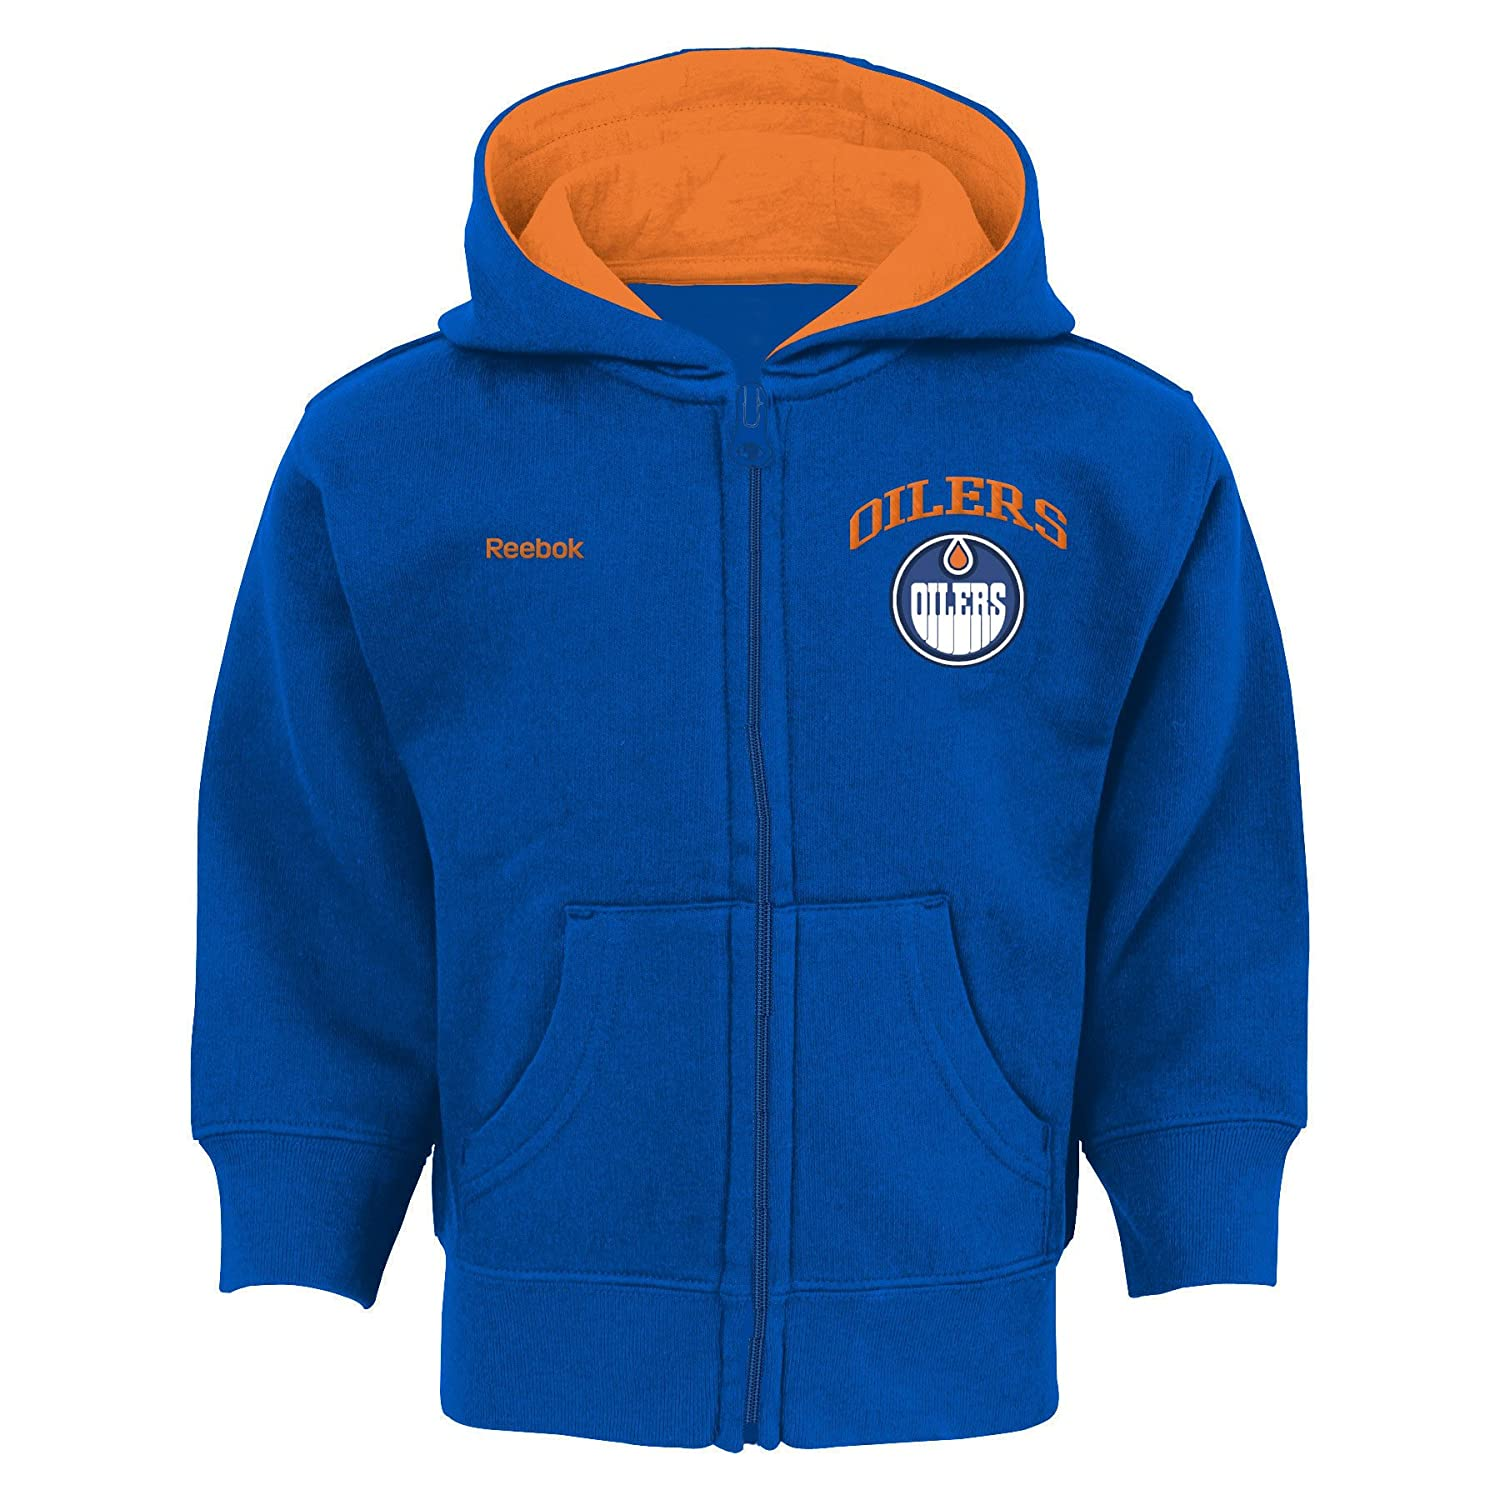 Edmonton Oilers Infant Pledge Full-Zip Fleece Hoodie - Size 18 Months Reebok